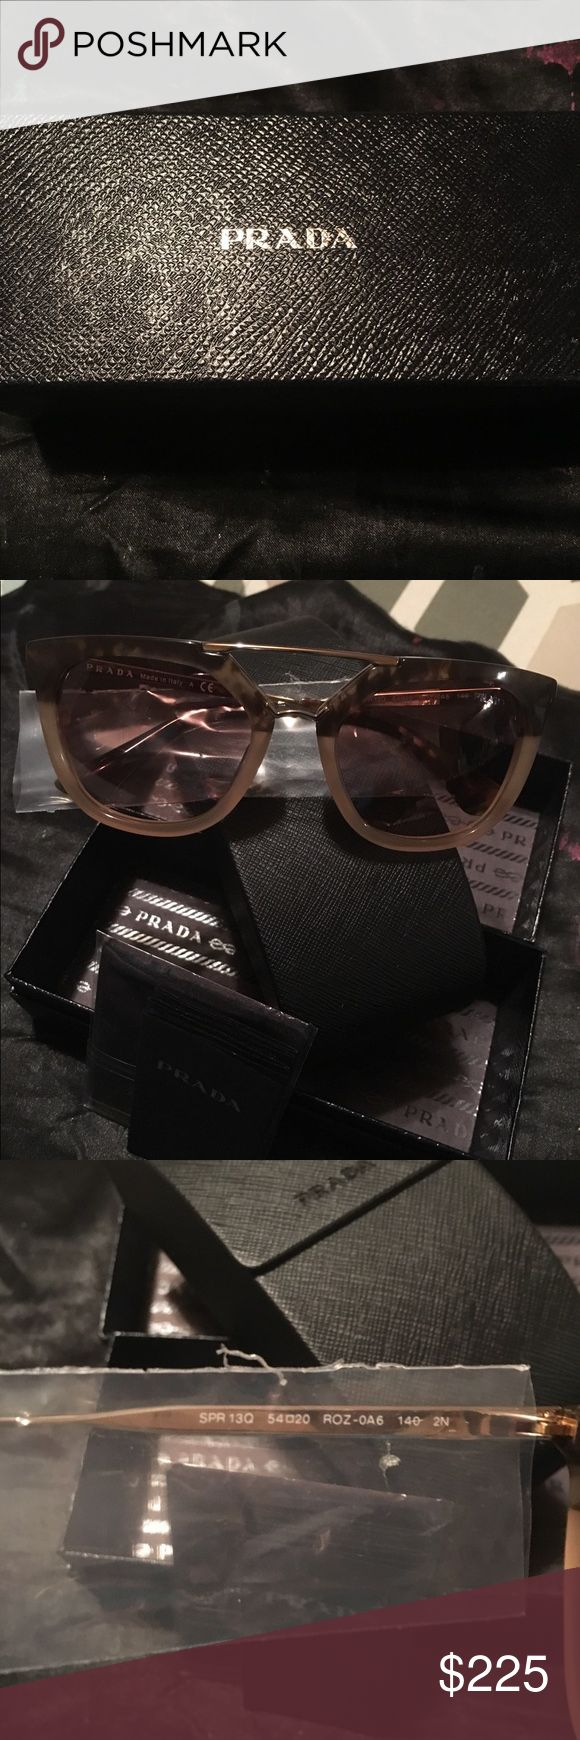 Authentic Prada Sunglasses Brand New Authentic Prada Sunglasses.. Only tried on not sure if I want to really sale.. Prada Accessories Sunglasses